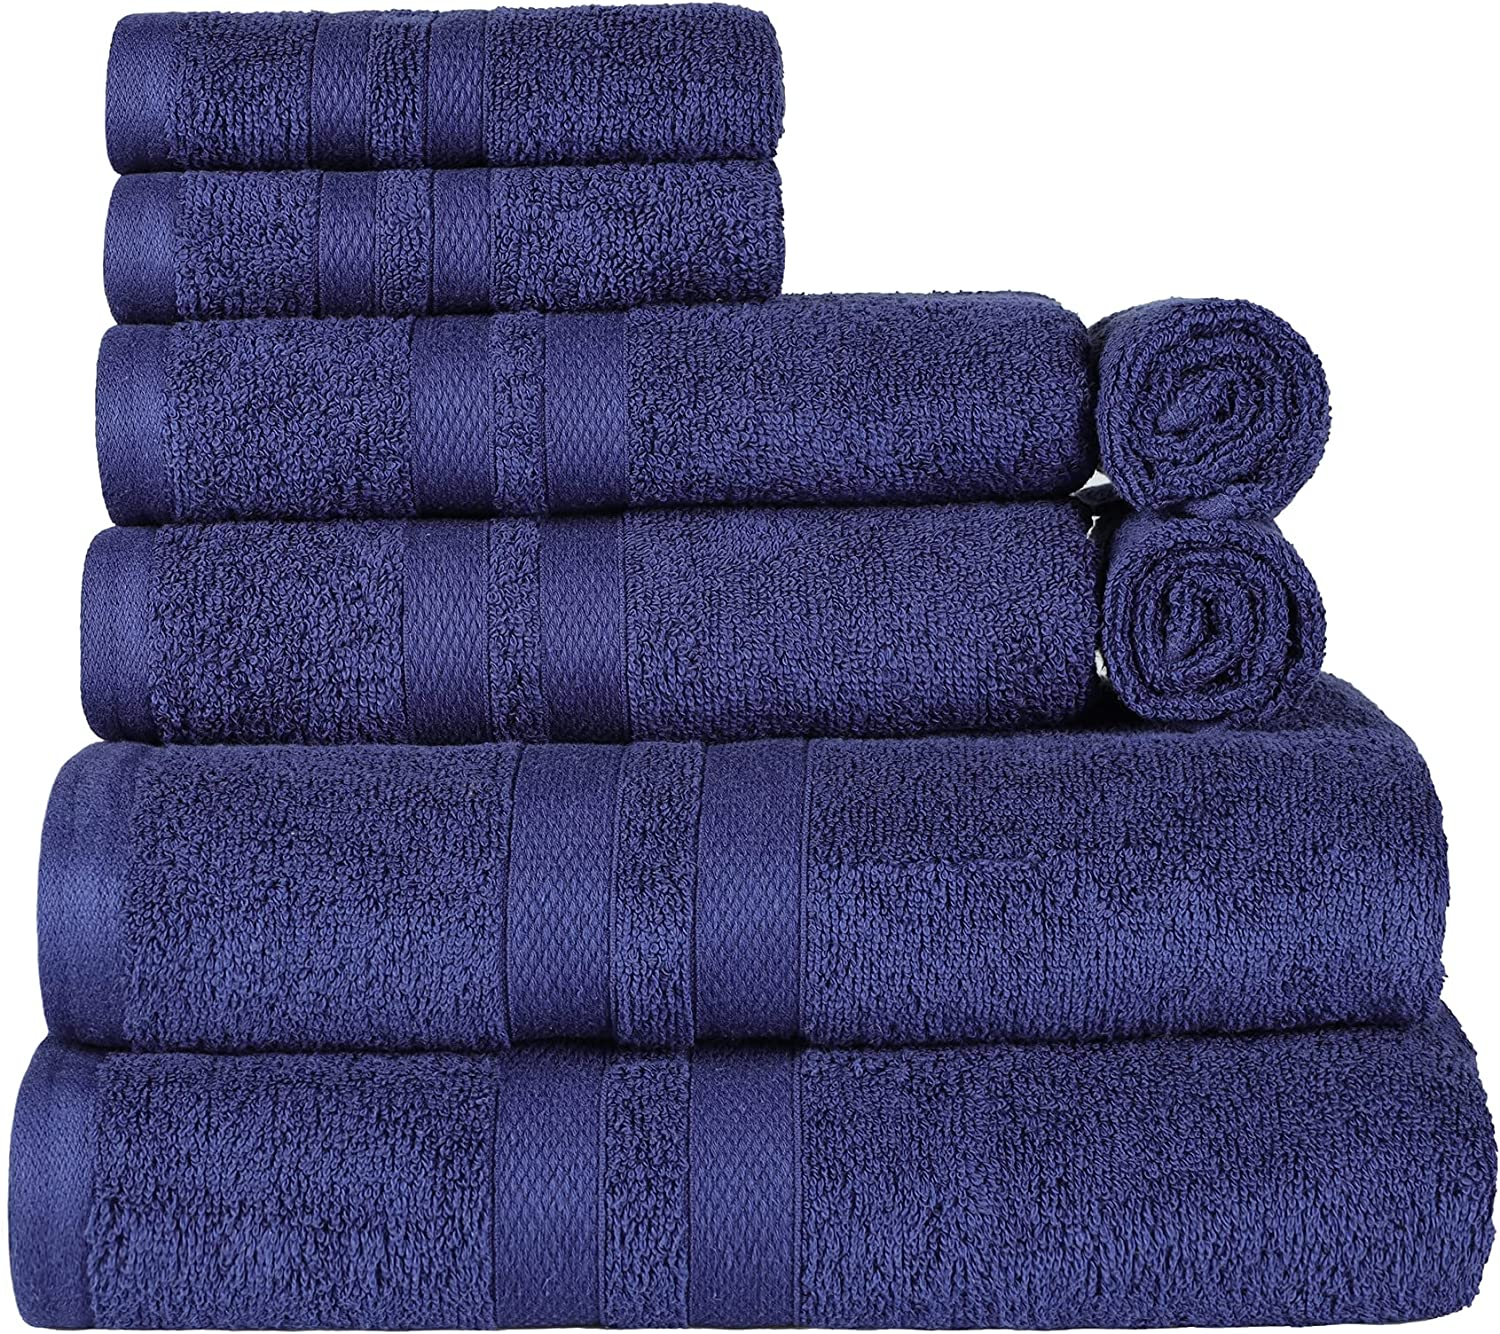 SUPERIOR Cotton Quick Drying 8-Piece Towel low-pricing Solid Indianapolis Mall Washcloths Set